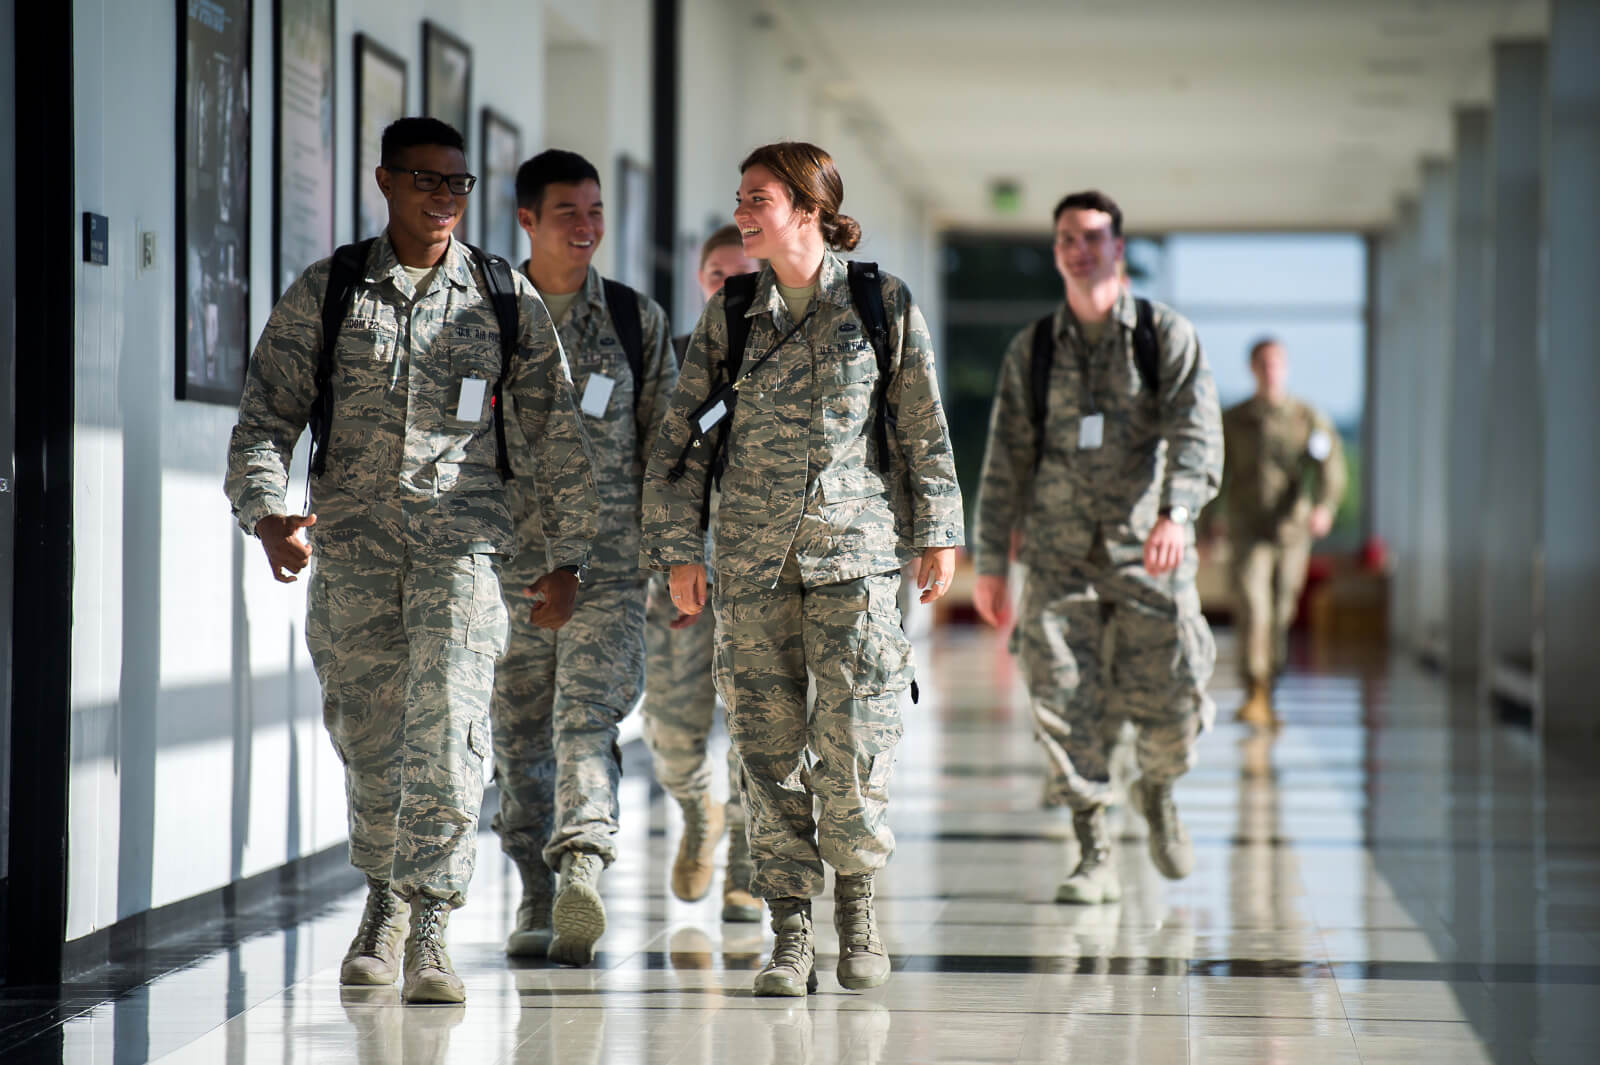 Cadets walking in hall